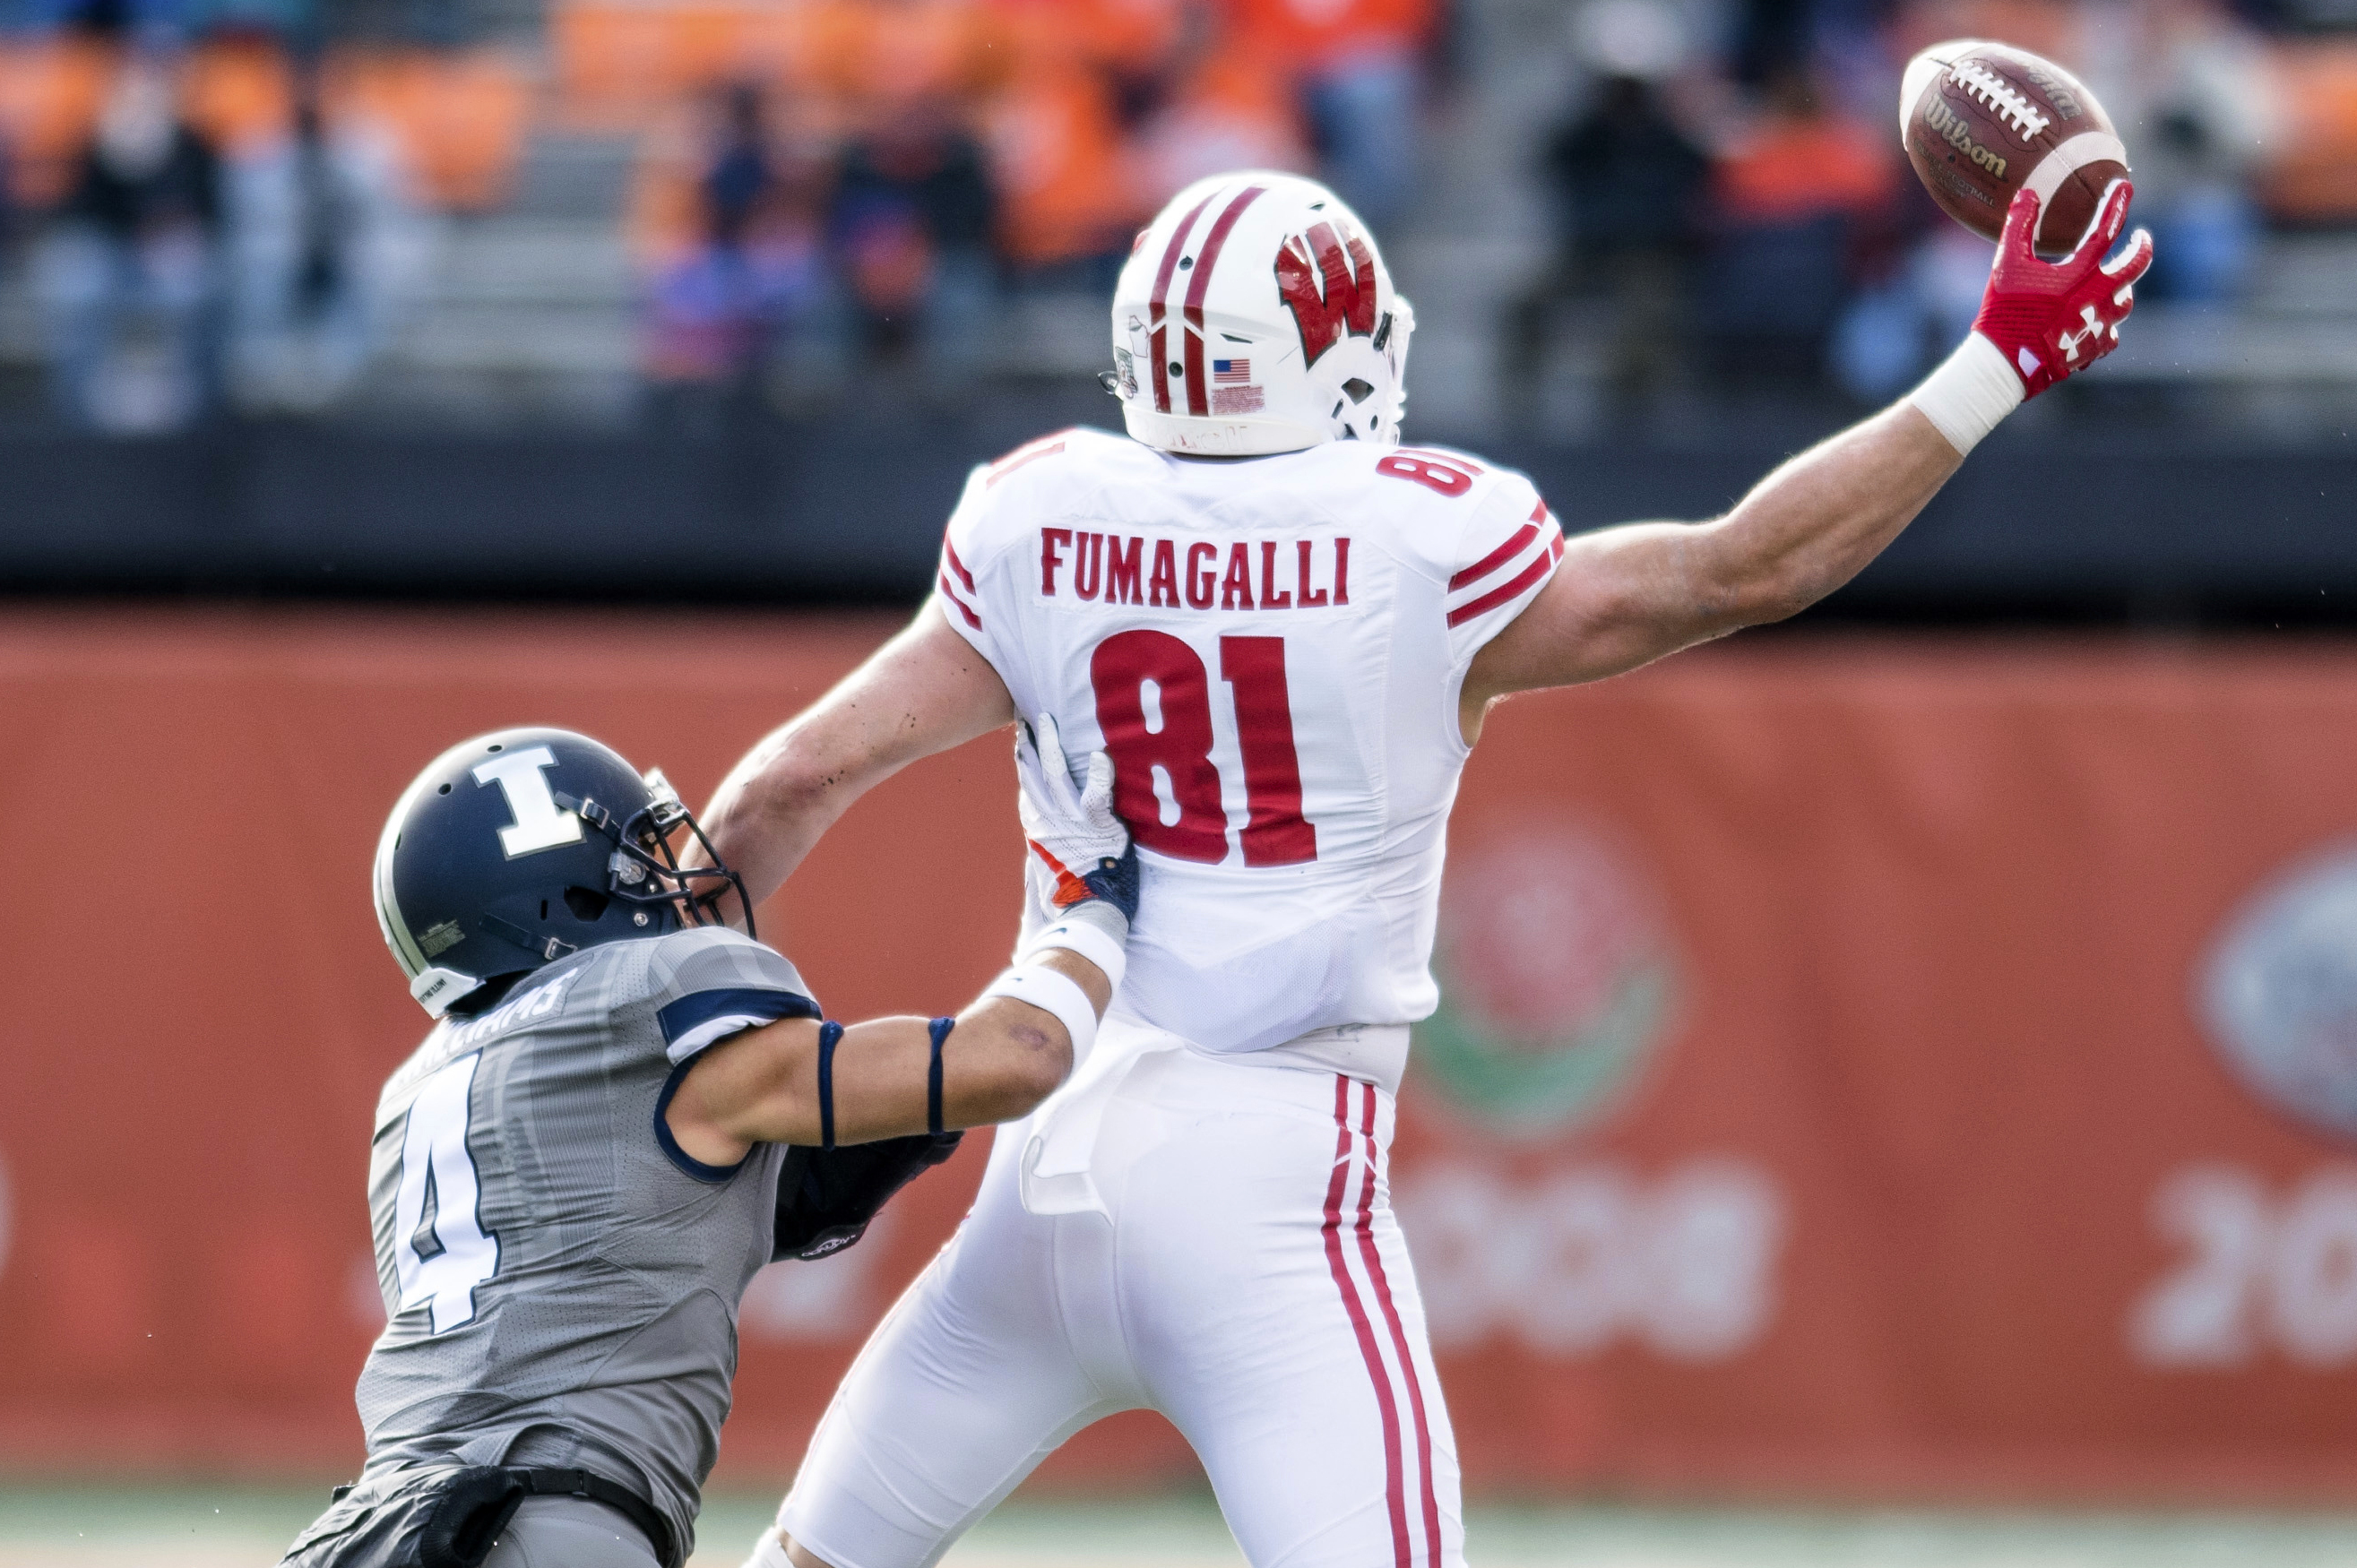 brand new 12c09 8195a Troy Fumagalli NFL Draft 2018: Scouting Report for Denver ...